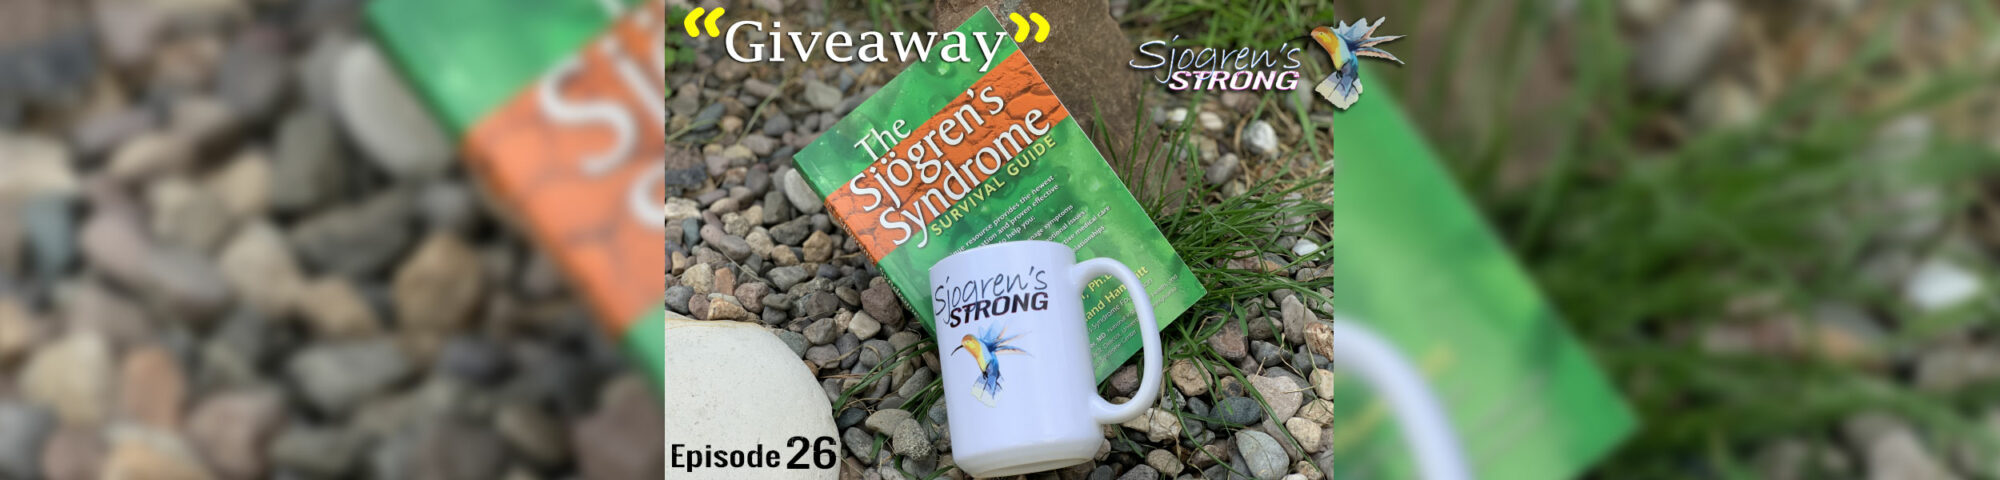 Sjogren's Syndrome Awareness Month Giveaway